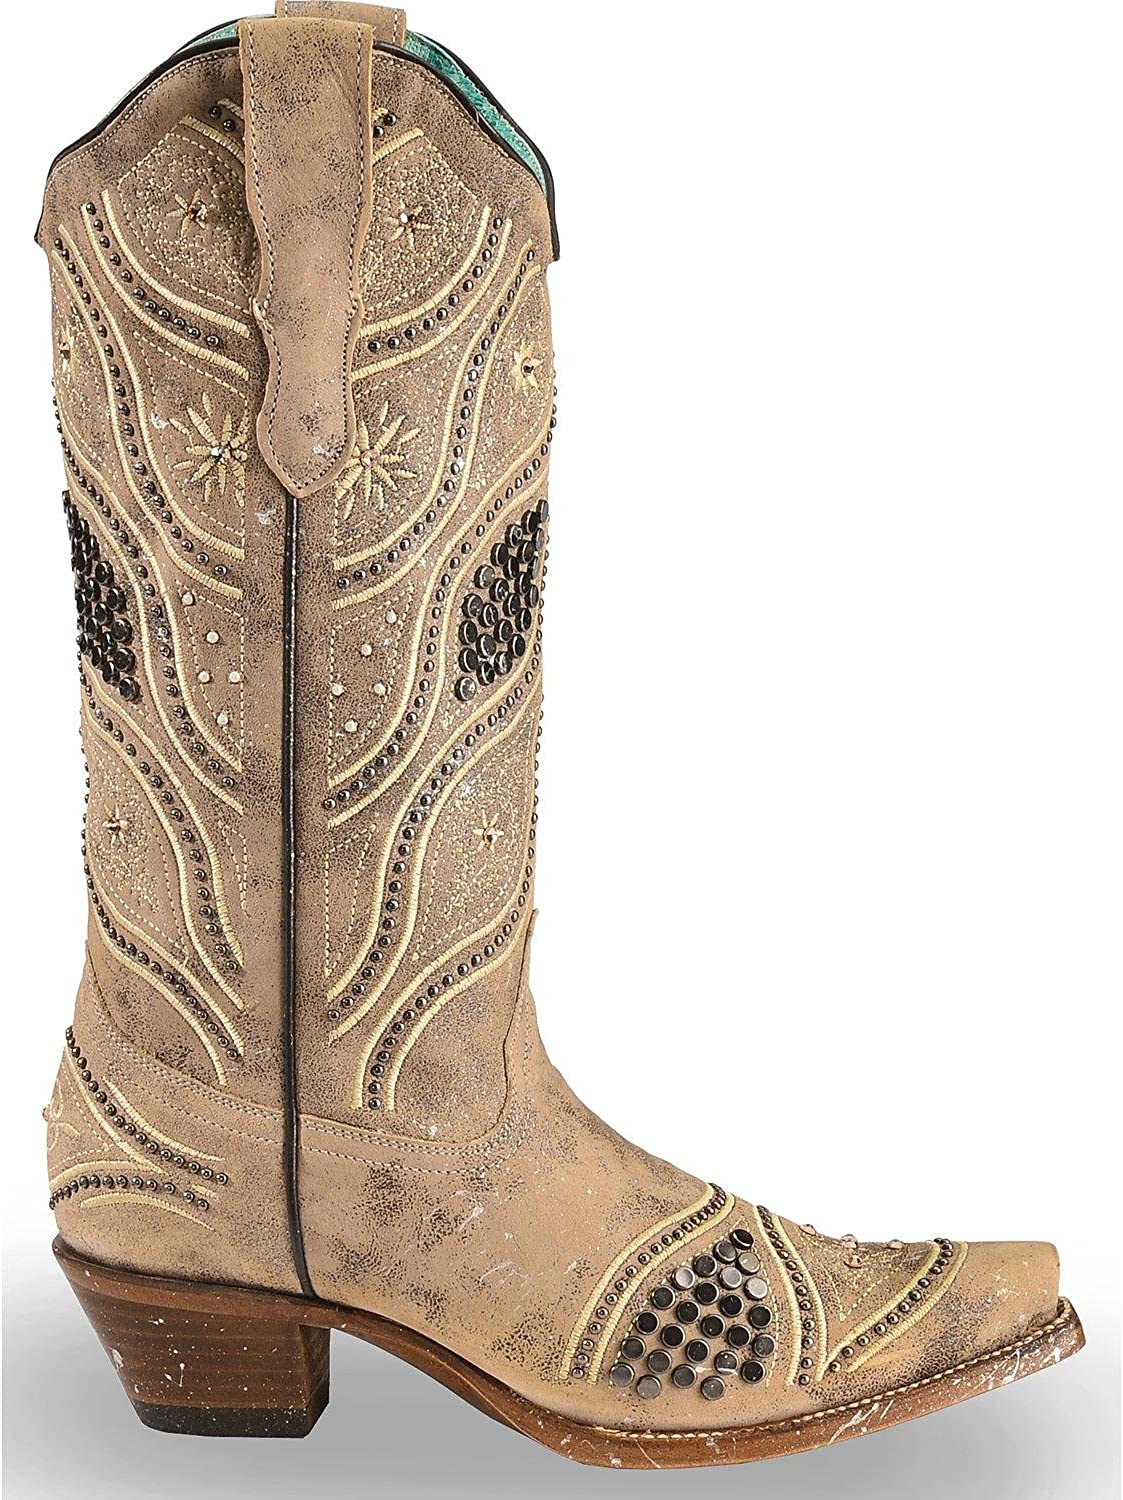 CORRAL Womens Embroidered Studded Bridal Cowgirl Boot Snip Toe